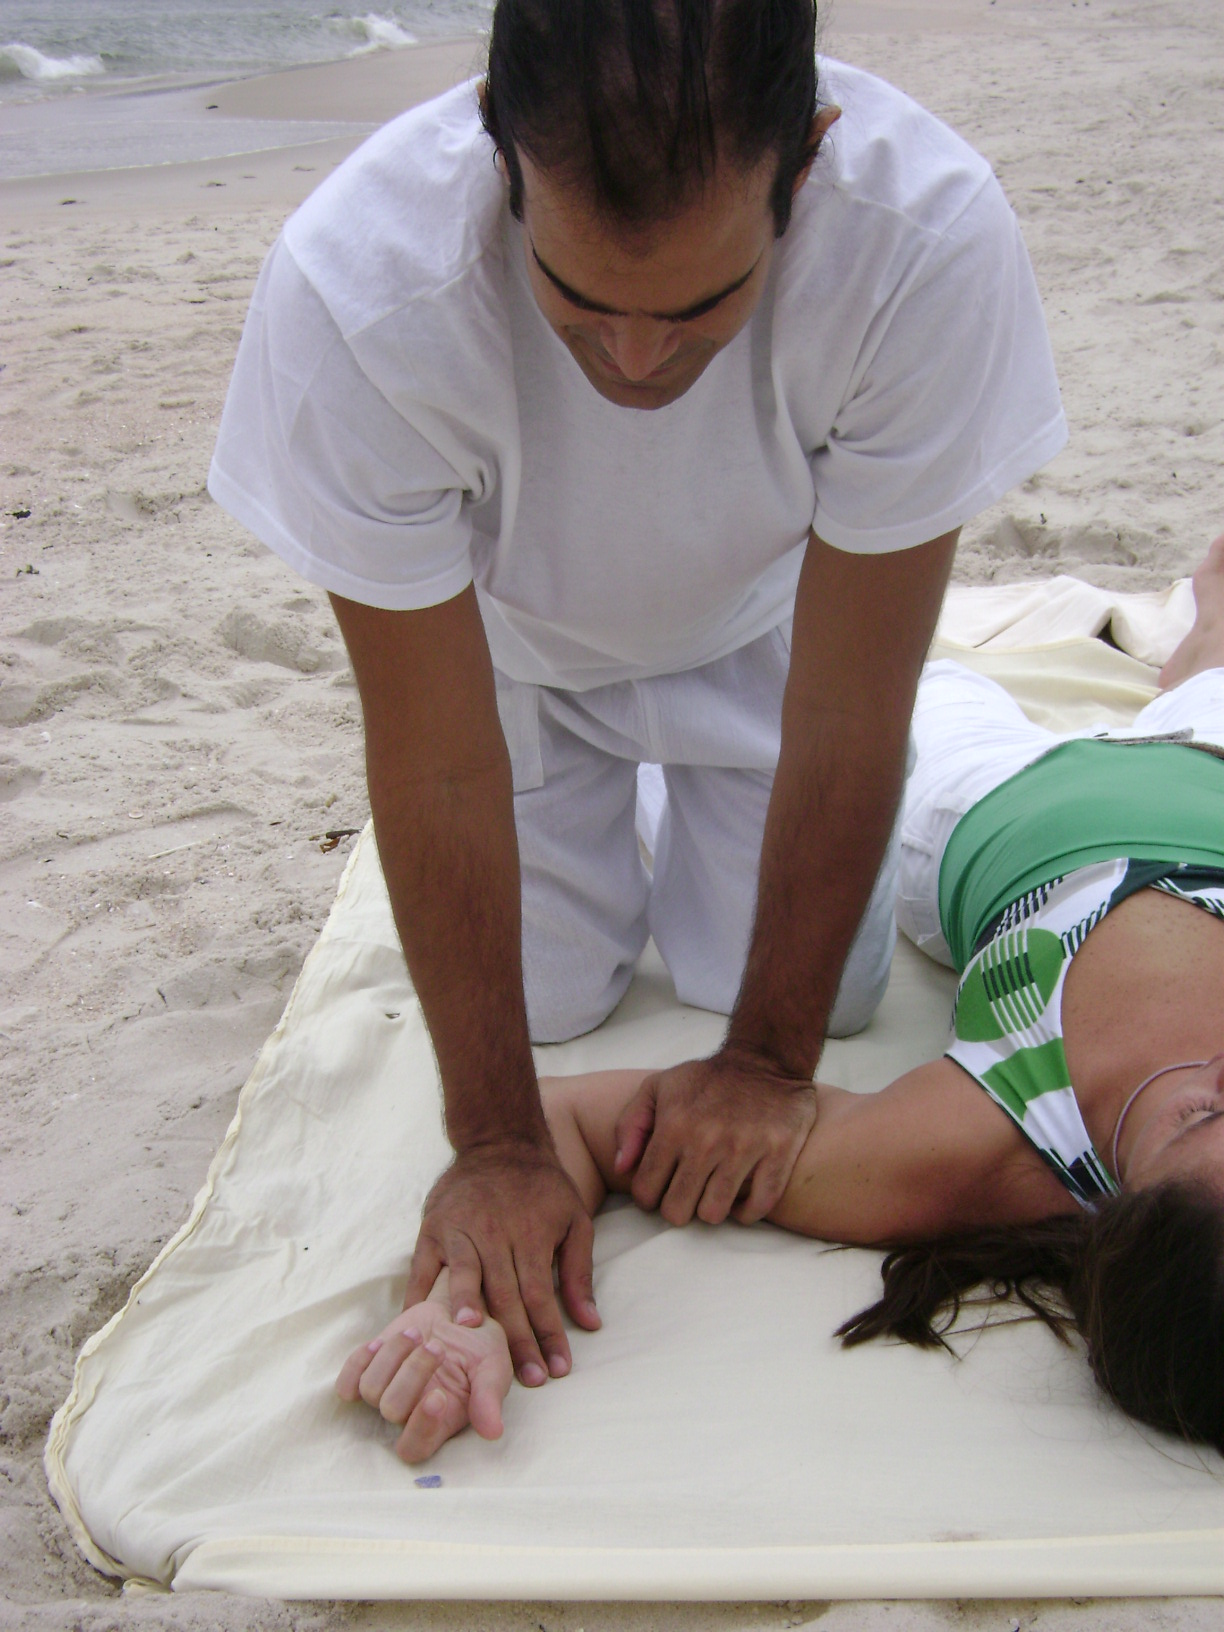 https://upload.wikimedia.org/wikipedia/commons/b/bf/Shiatsu_4.jpg